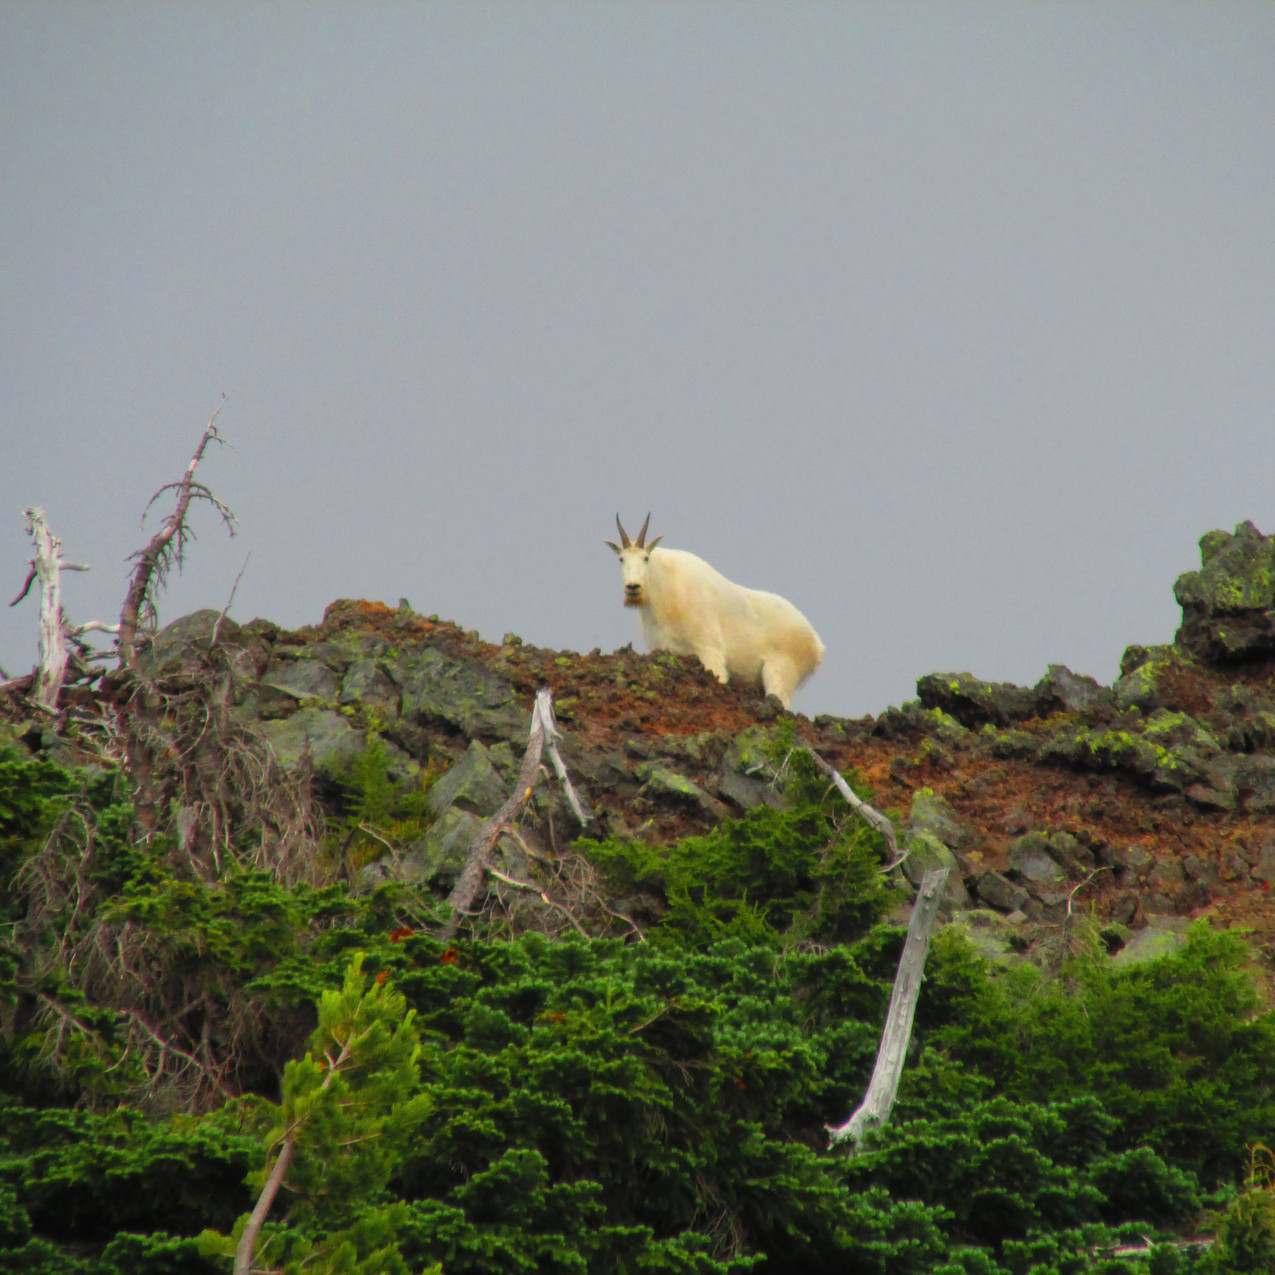 It took me a couple tries to get a good picture of the mountain goat, but I appreciated it when he ran up to the ridge so I could get a really good shot.